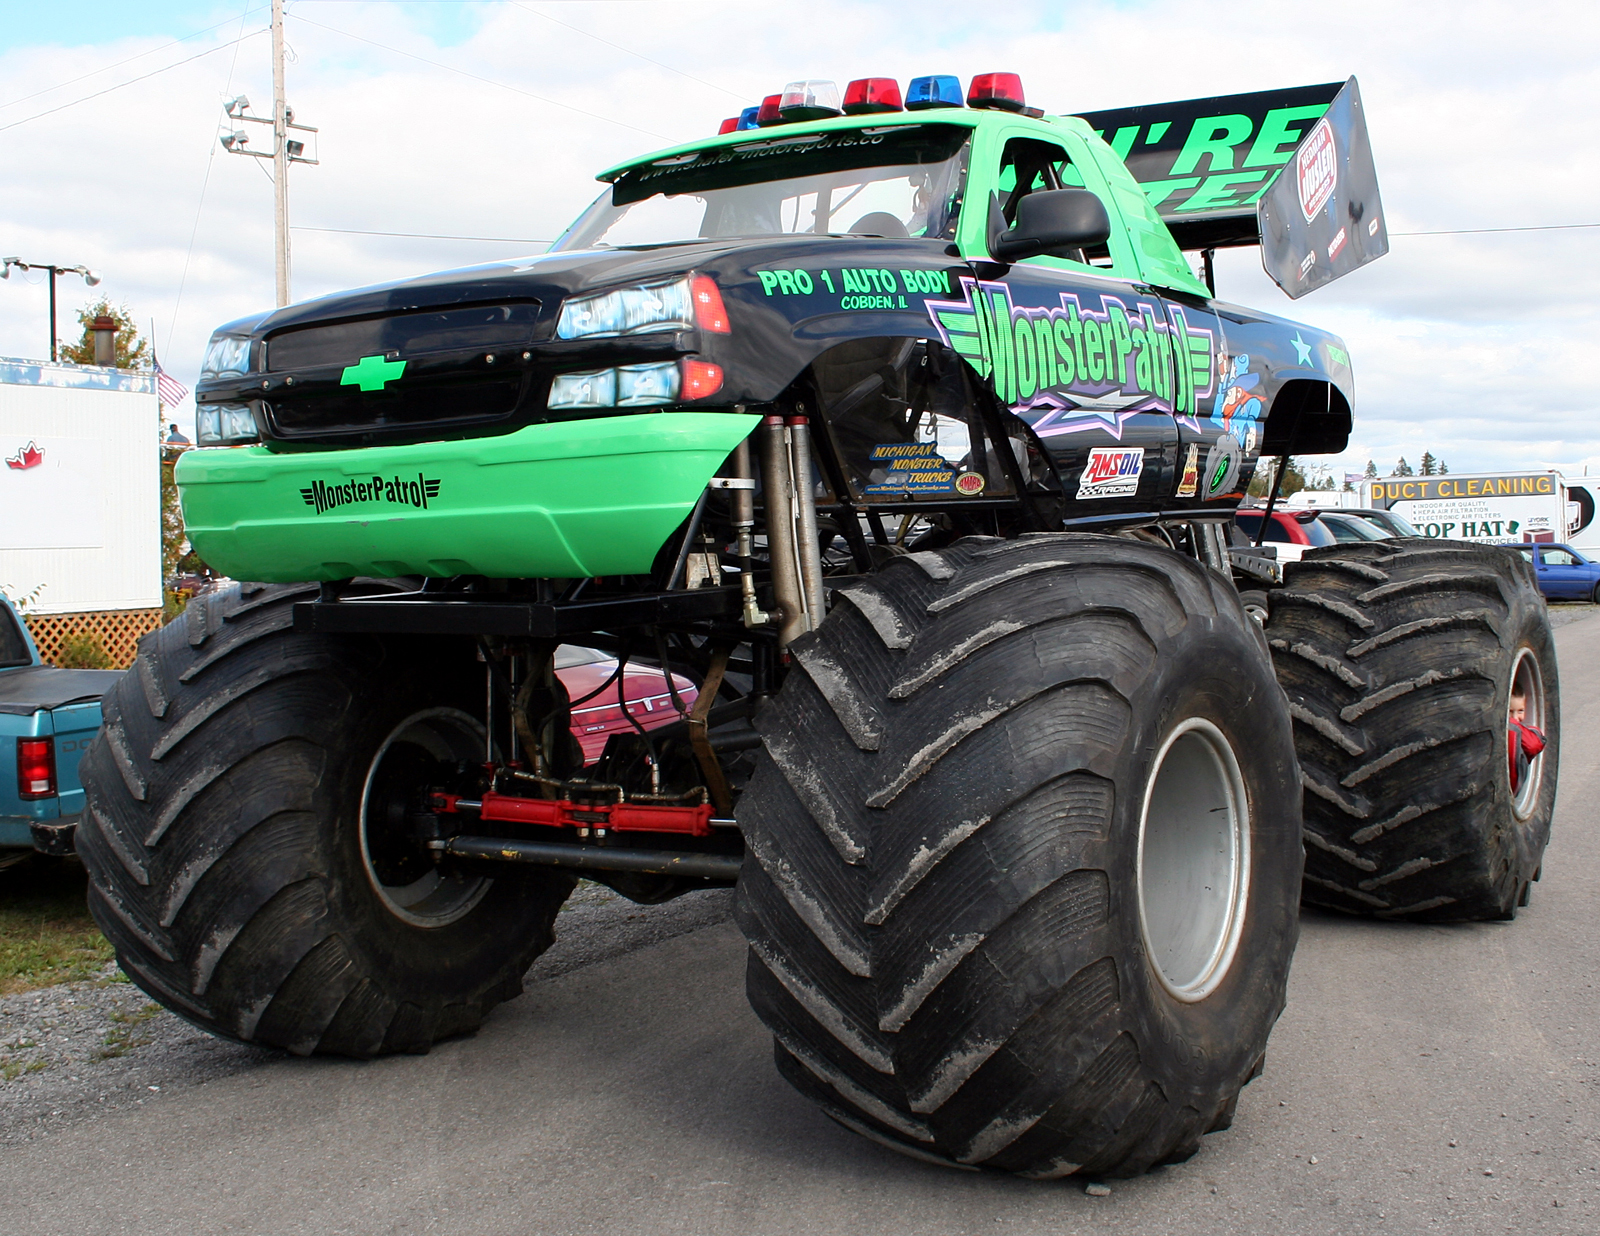 truck monster truck trucks 4x4 wheel wheels b wallpaper background 1600x1236